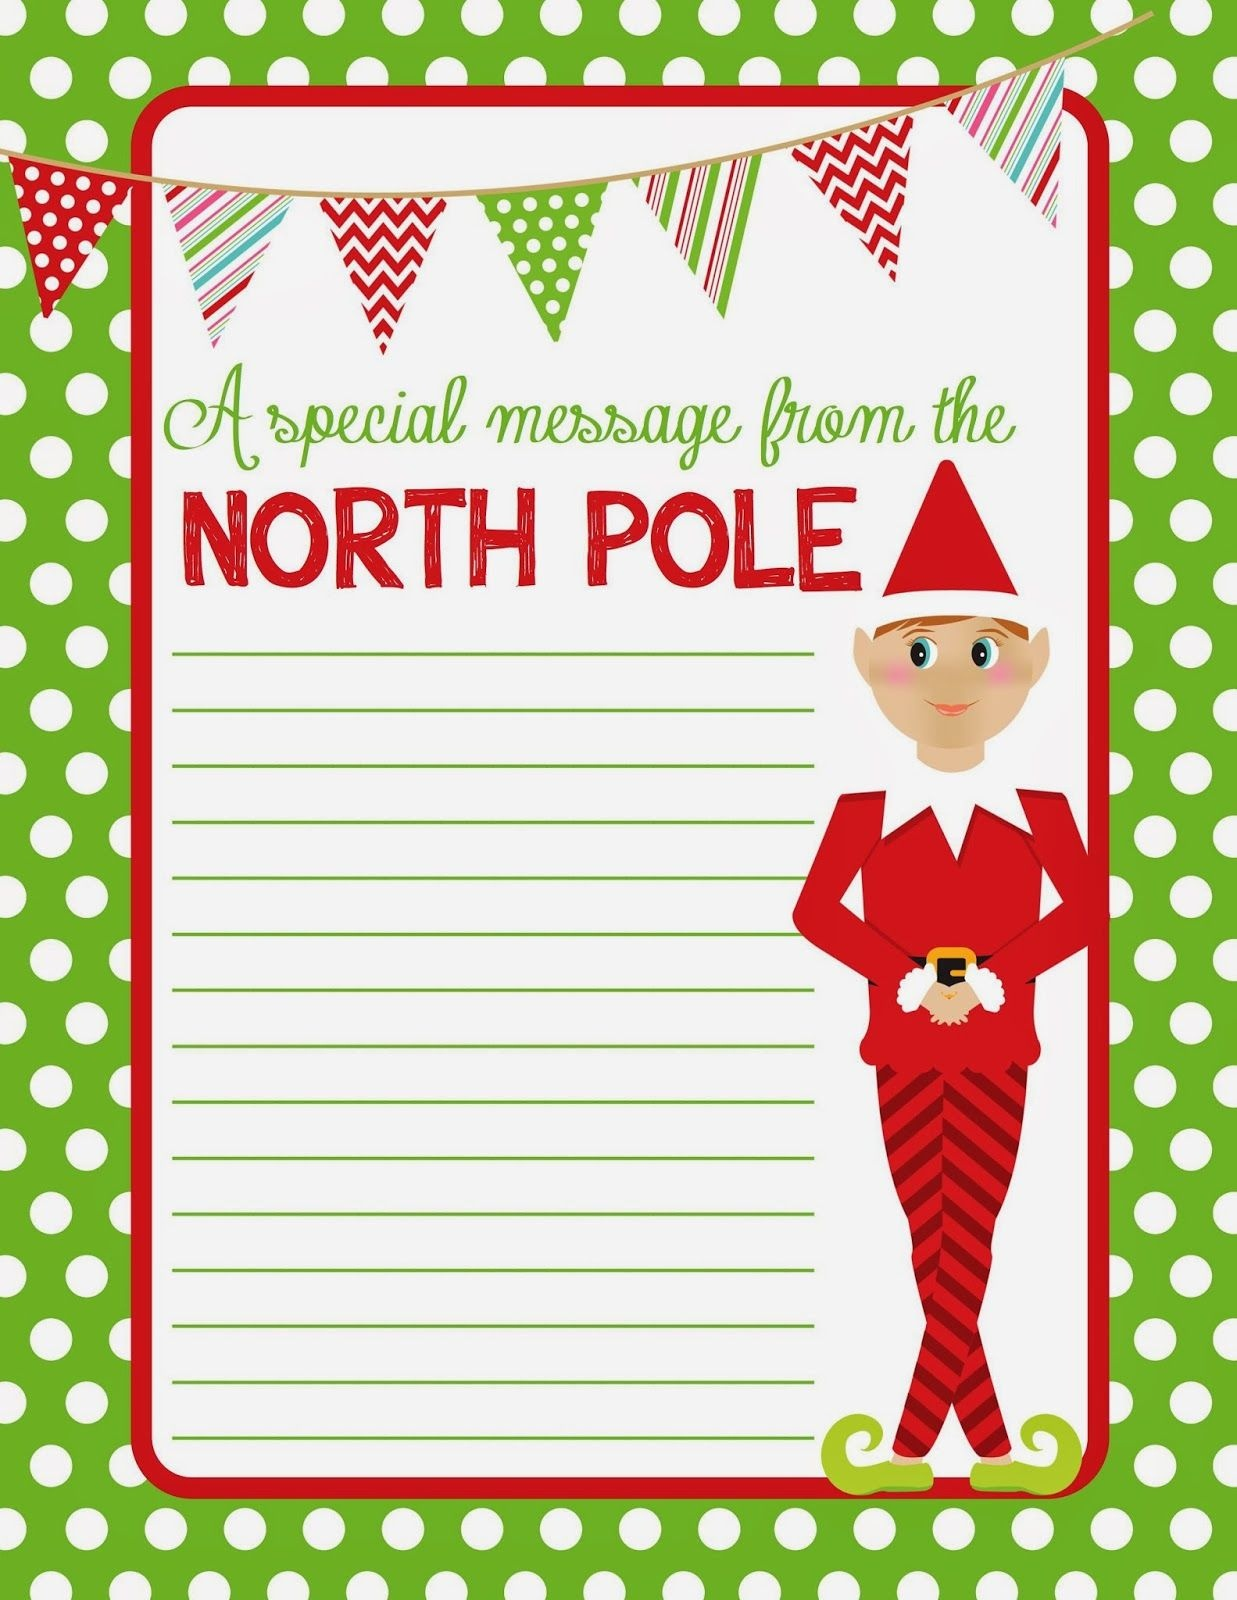 4 Best Images Of Elf On The Shelf Free Printable Christmas Paper - Free Printable Elf Stationery